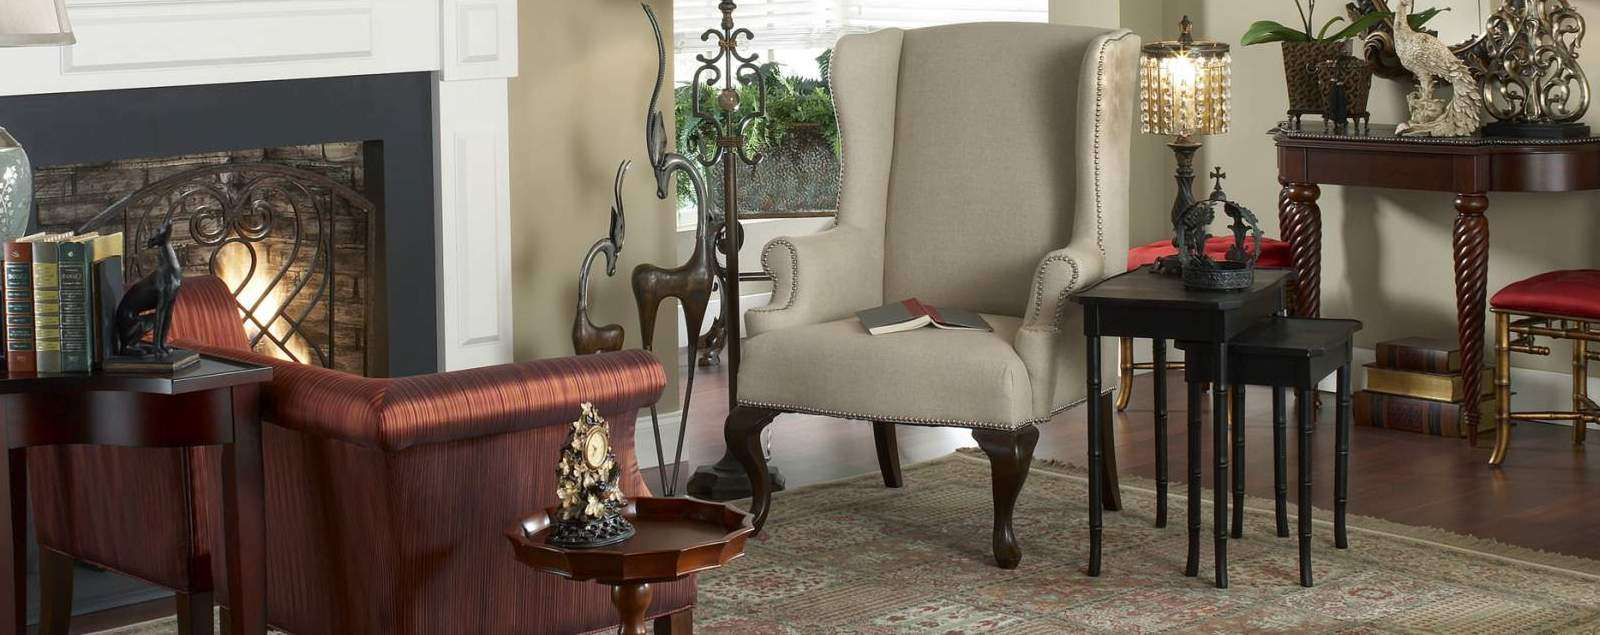 Furniture & Decor - Carts - End Tables - Vases - Photo Picture Frames